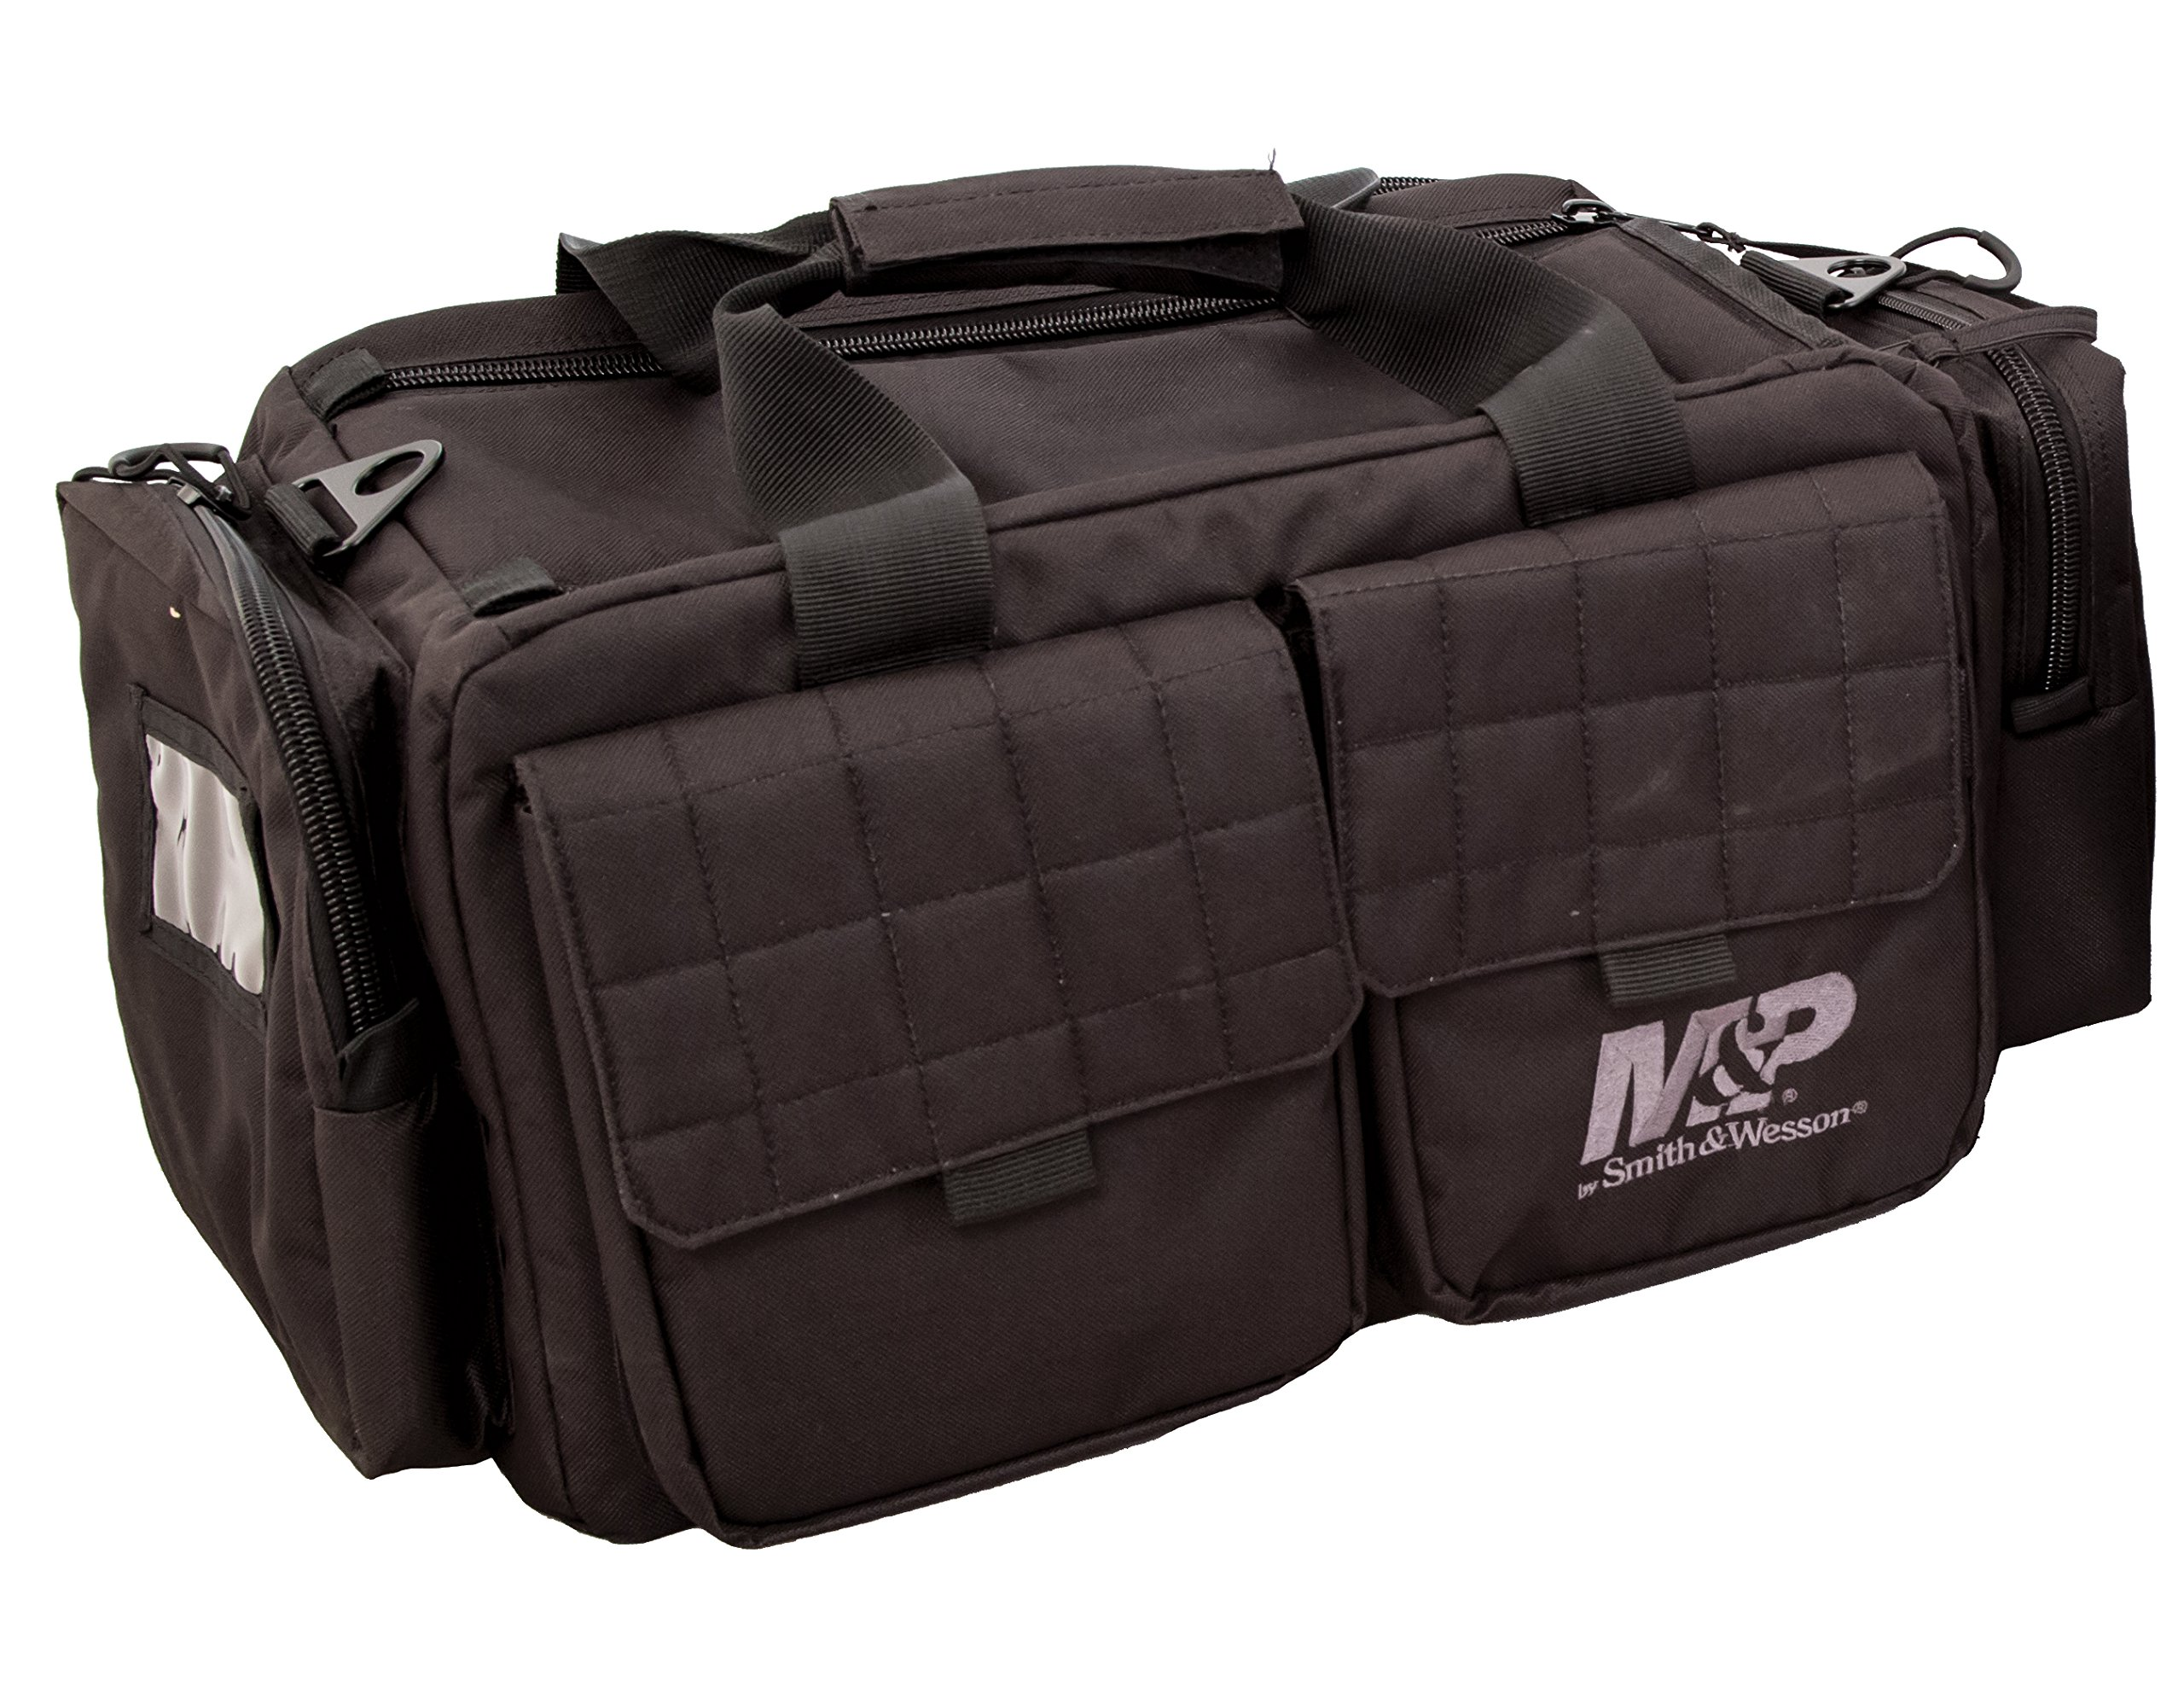 Smith & Wesson M&P MP Officer Tactical Range Bag with Weather Resistant Material for Gun Pistol Shooting Ammo Accessories and Hunting